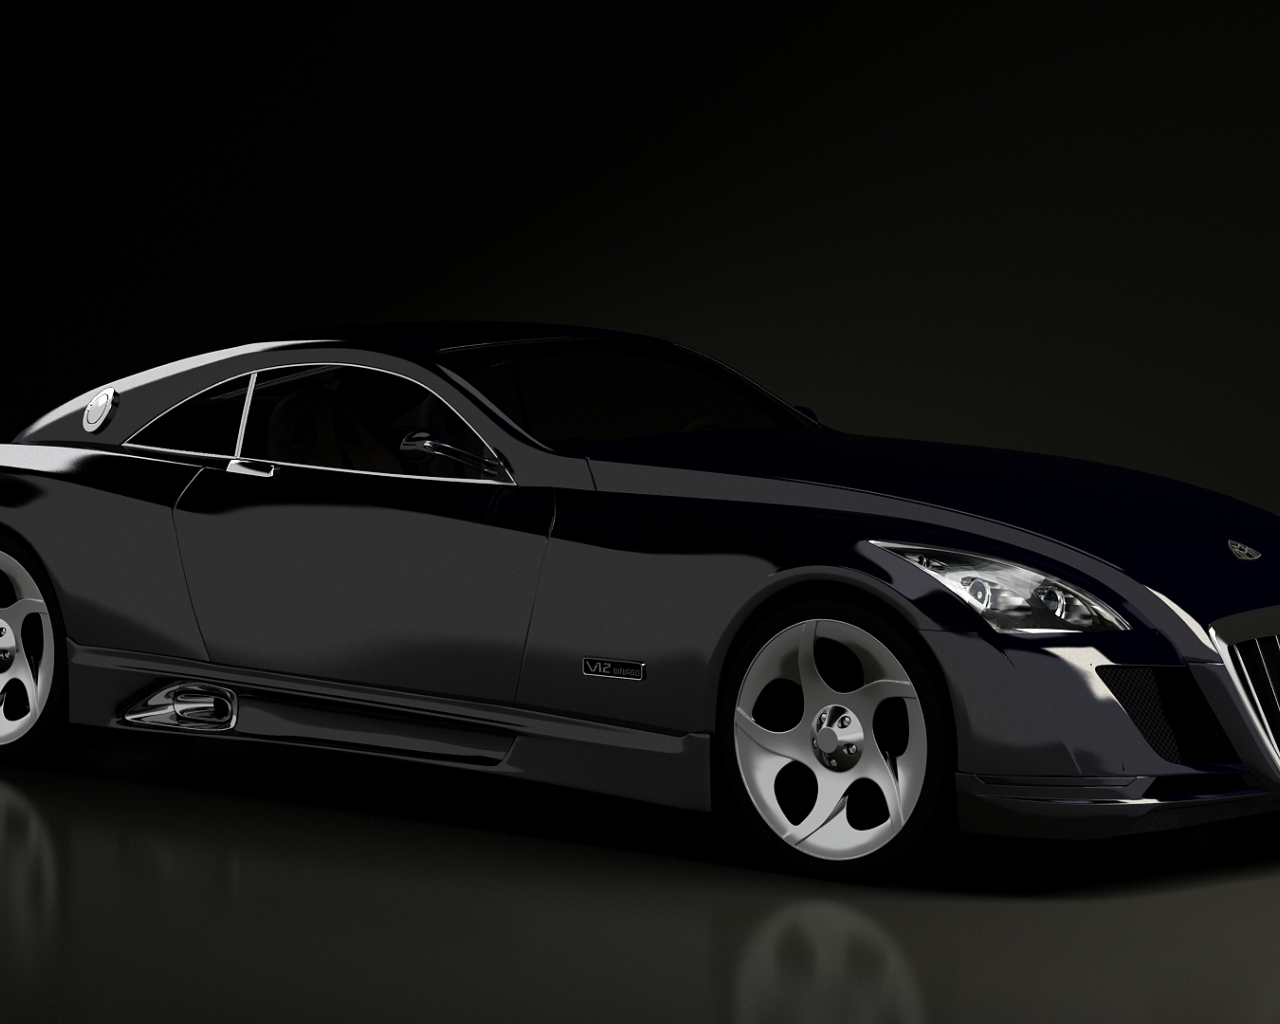 Free download Best 41 Maybach Exelero Wallpaper on ...